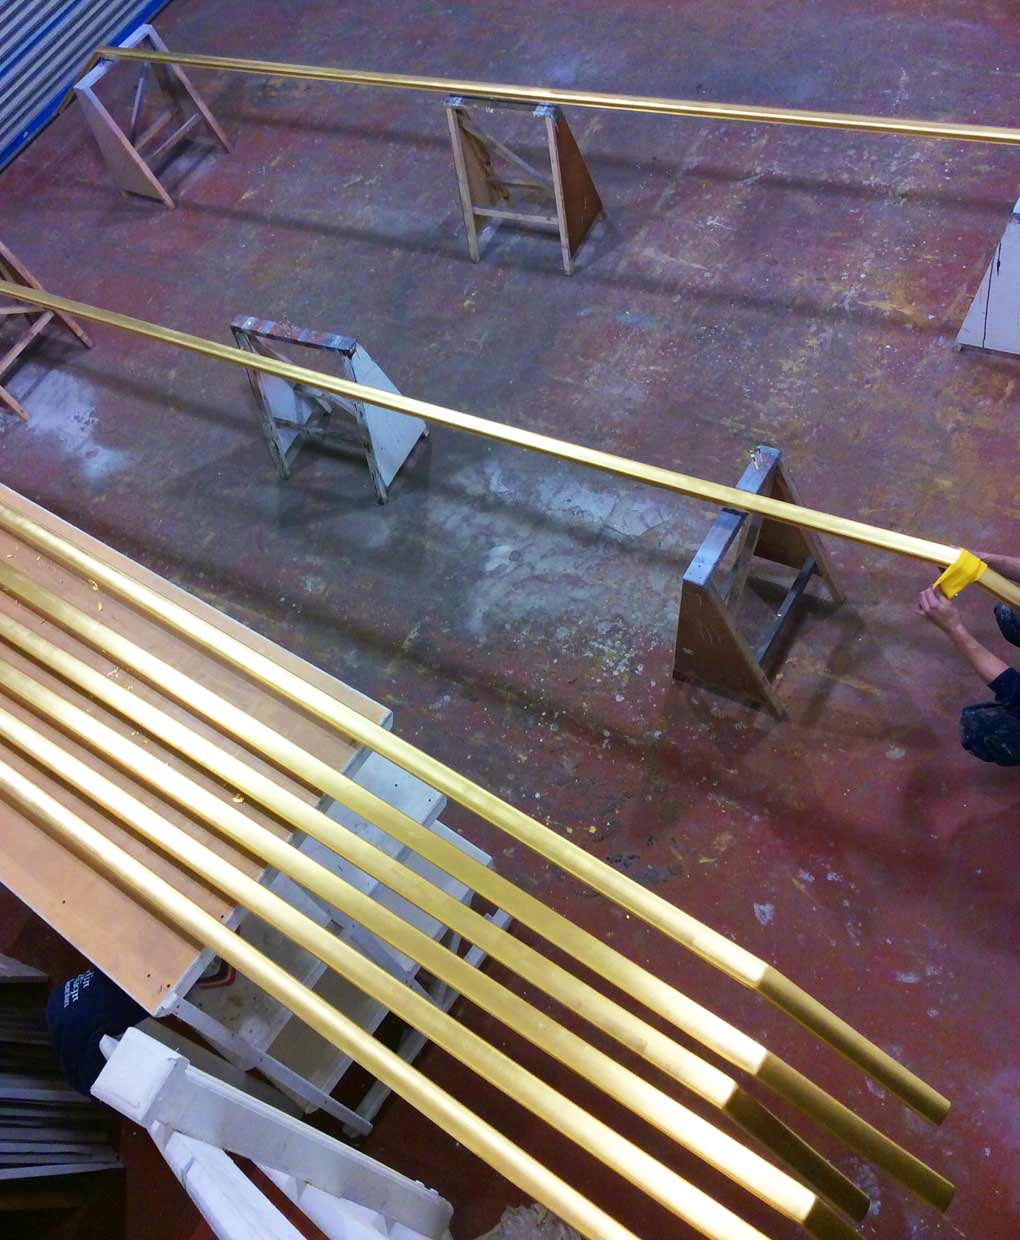 Aluminium handrails gilded in 24ct gold for the Sultan of Brunei by our team of expert gilders.